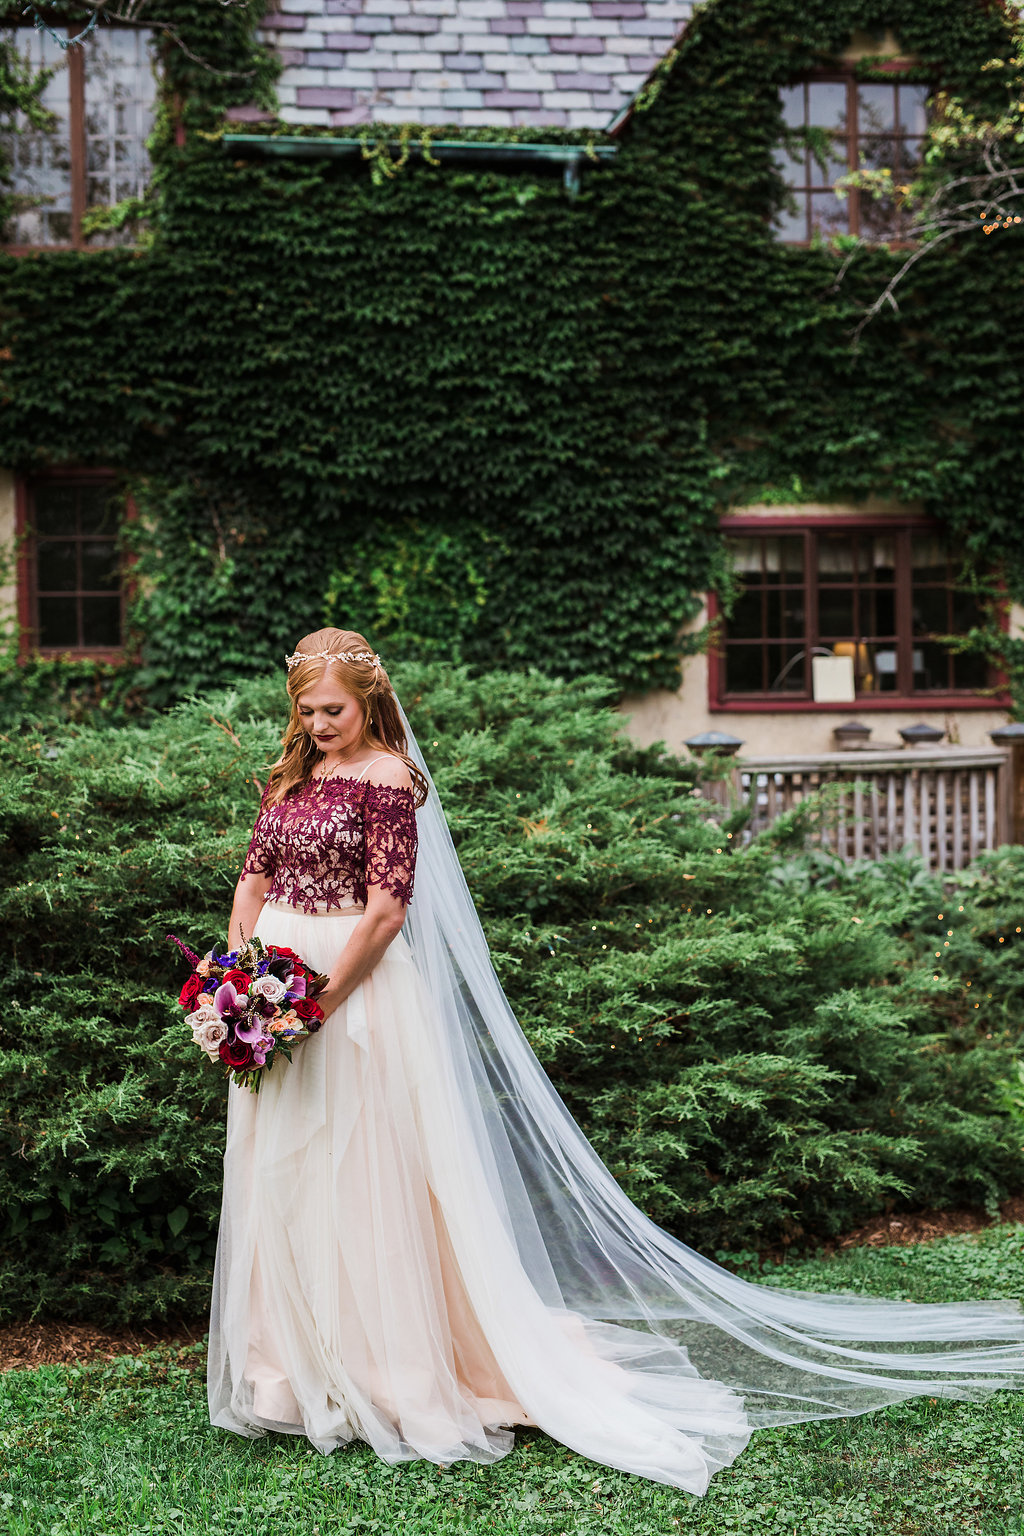 bridal fashion with burgundy accessories - photo by Katie Ricard Photography http://ruffledblog.com/dramatic-woodland-wedding-inspiration-with-burgundy-accents